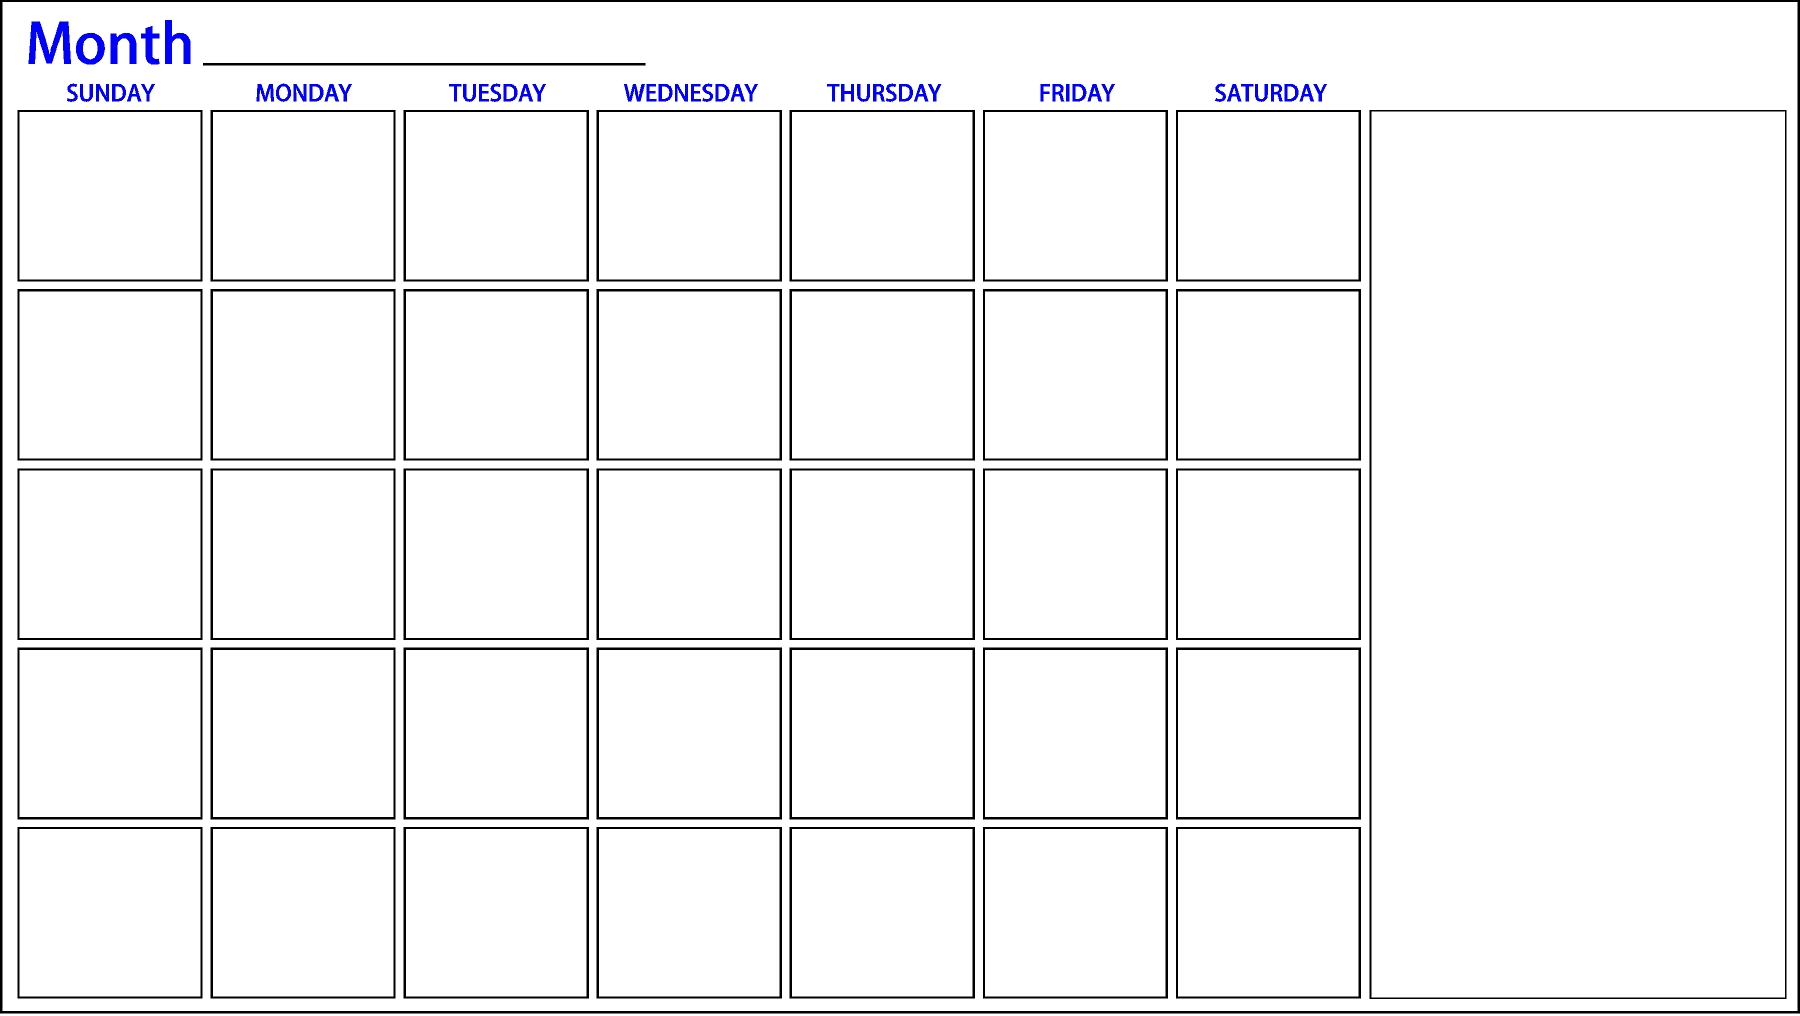 One Month Calendar | Dry Erase Board | Dry Erase Innovations